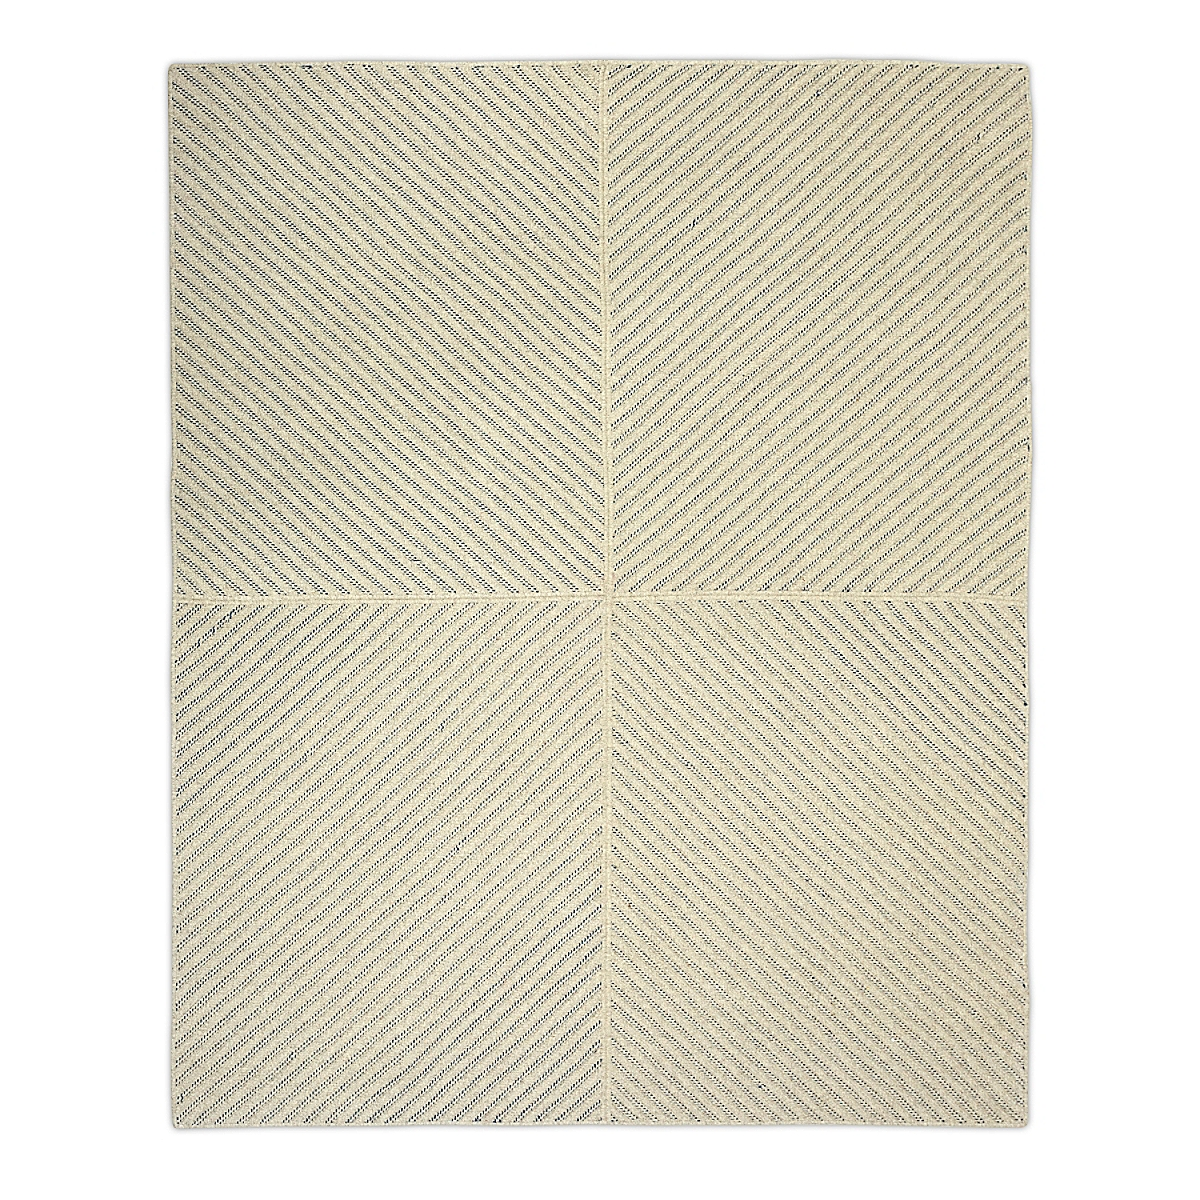 Four Points Diagonal Rug - Navy